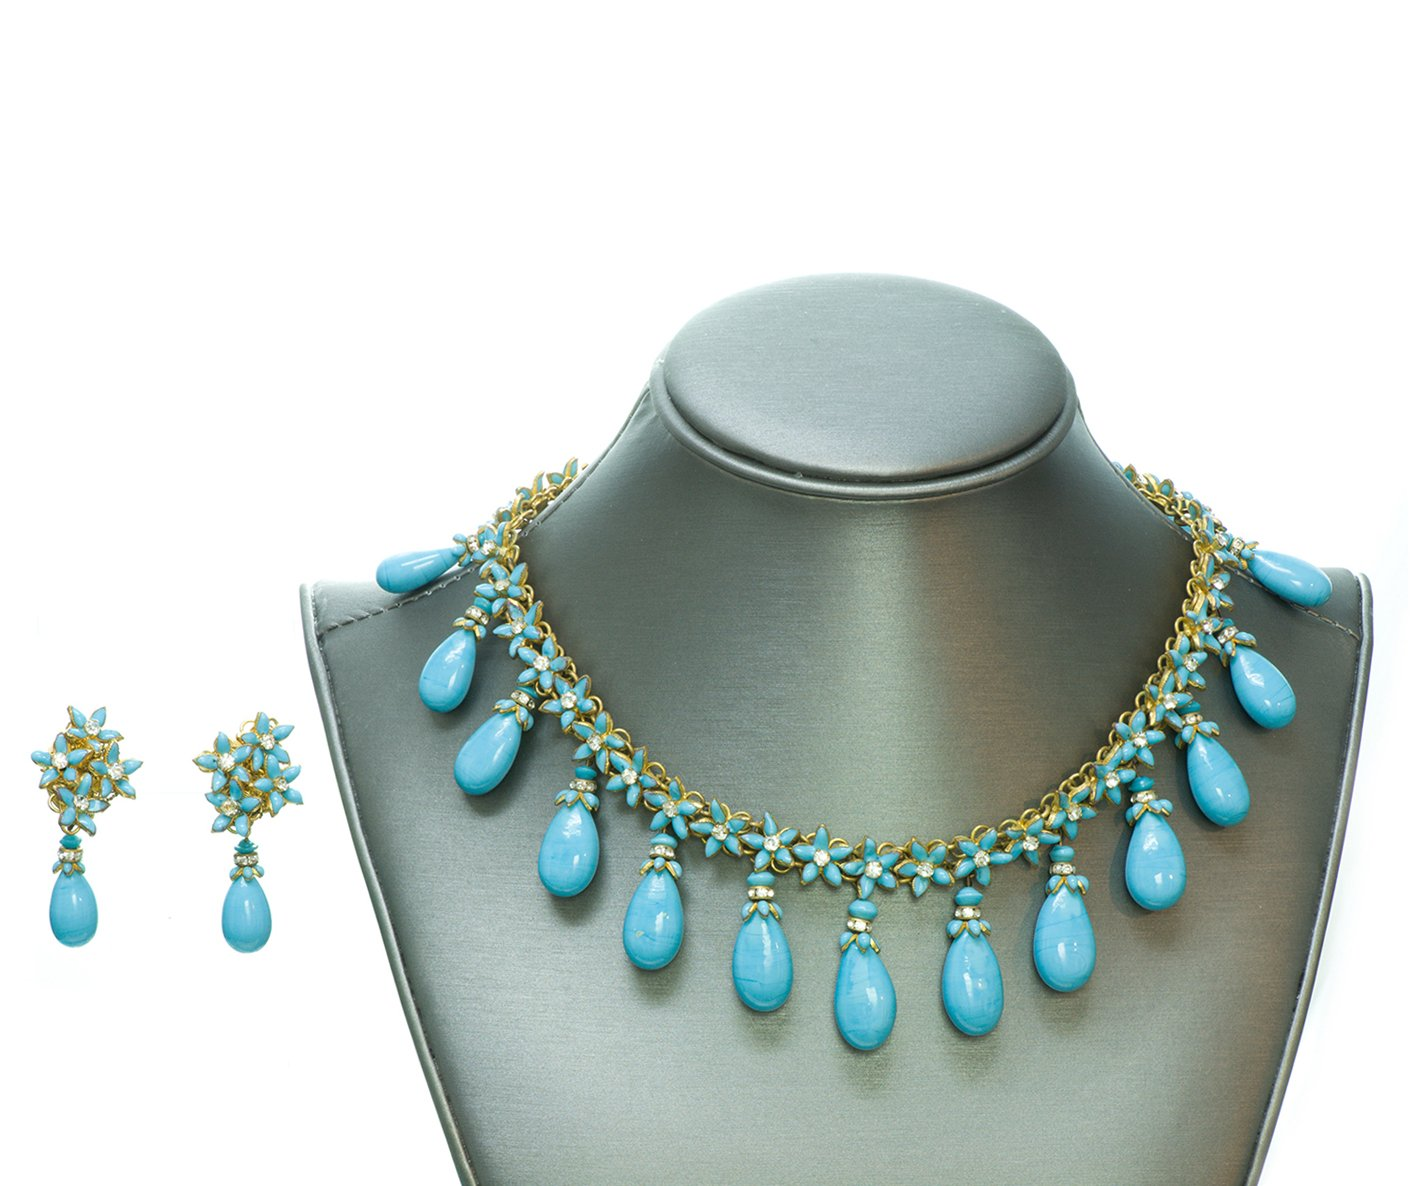 coco-chanel-gripoix-turquoise-necklace-earrings-set